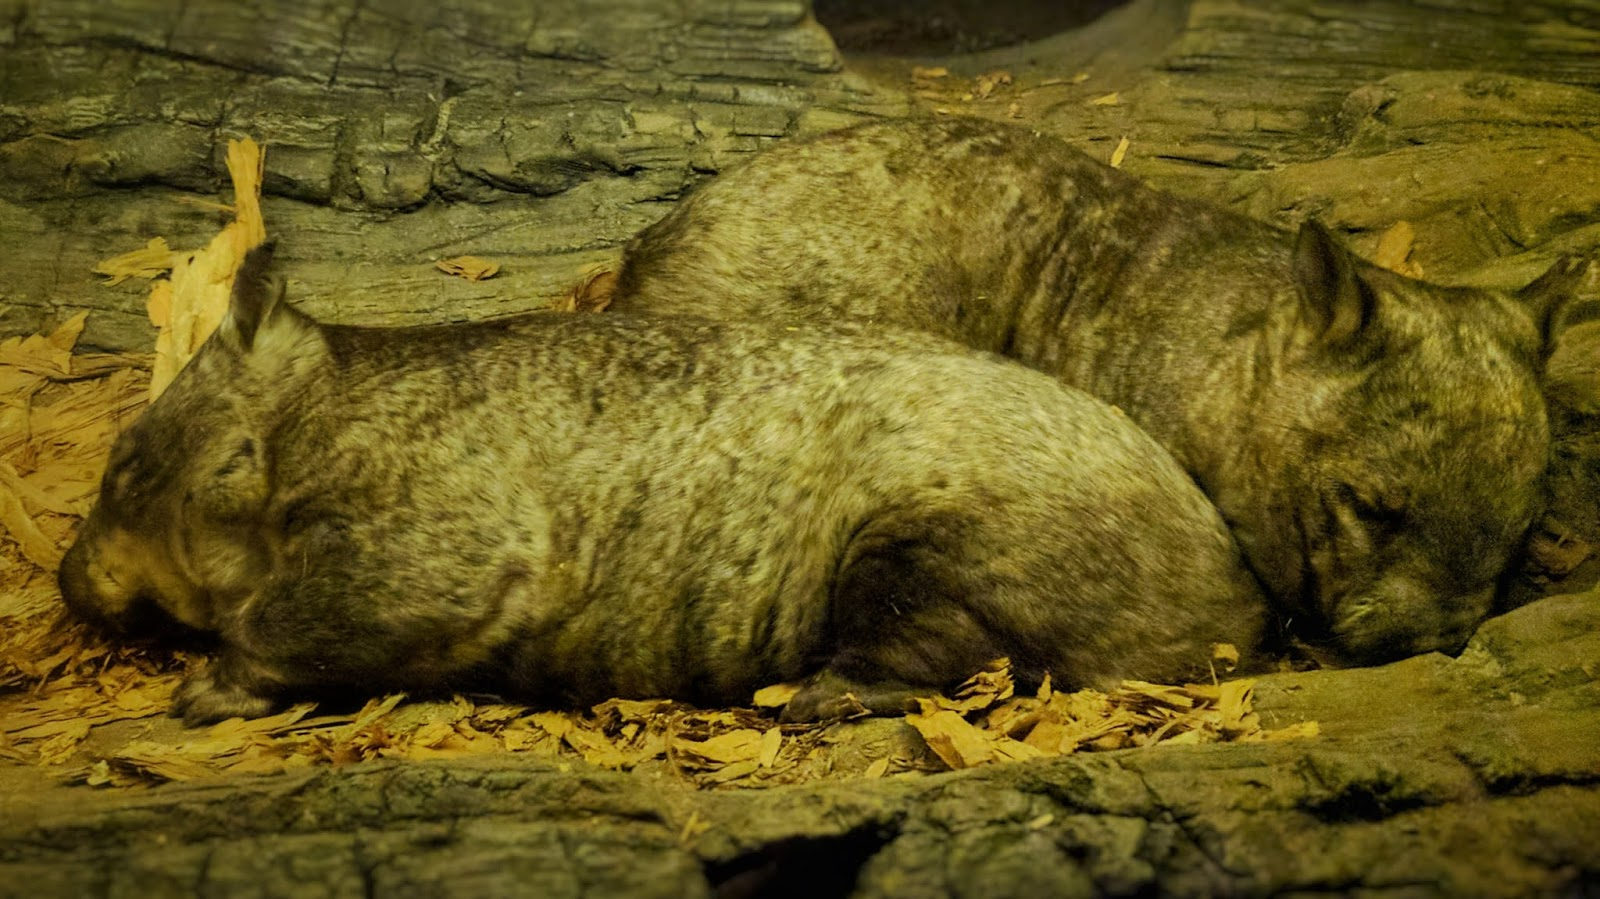 Two Northern hairy-nosed wombats